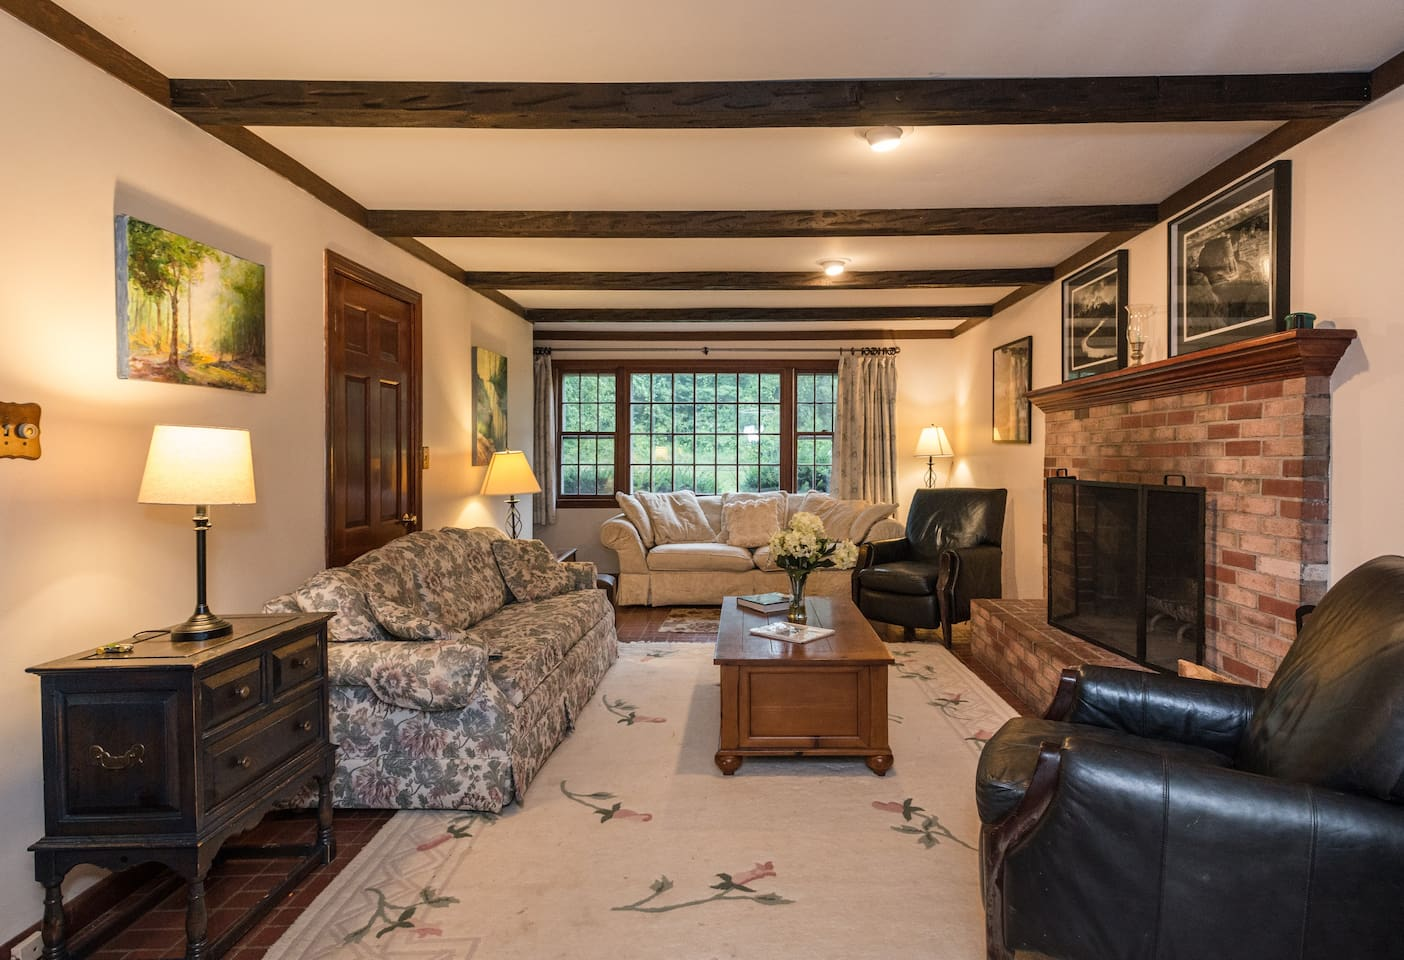 The Family room has plenty of room to gather together with 2 full size couches, 2 lounge chairs, coffee table, TV, and fireplace.